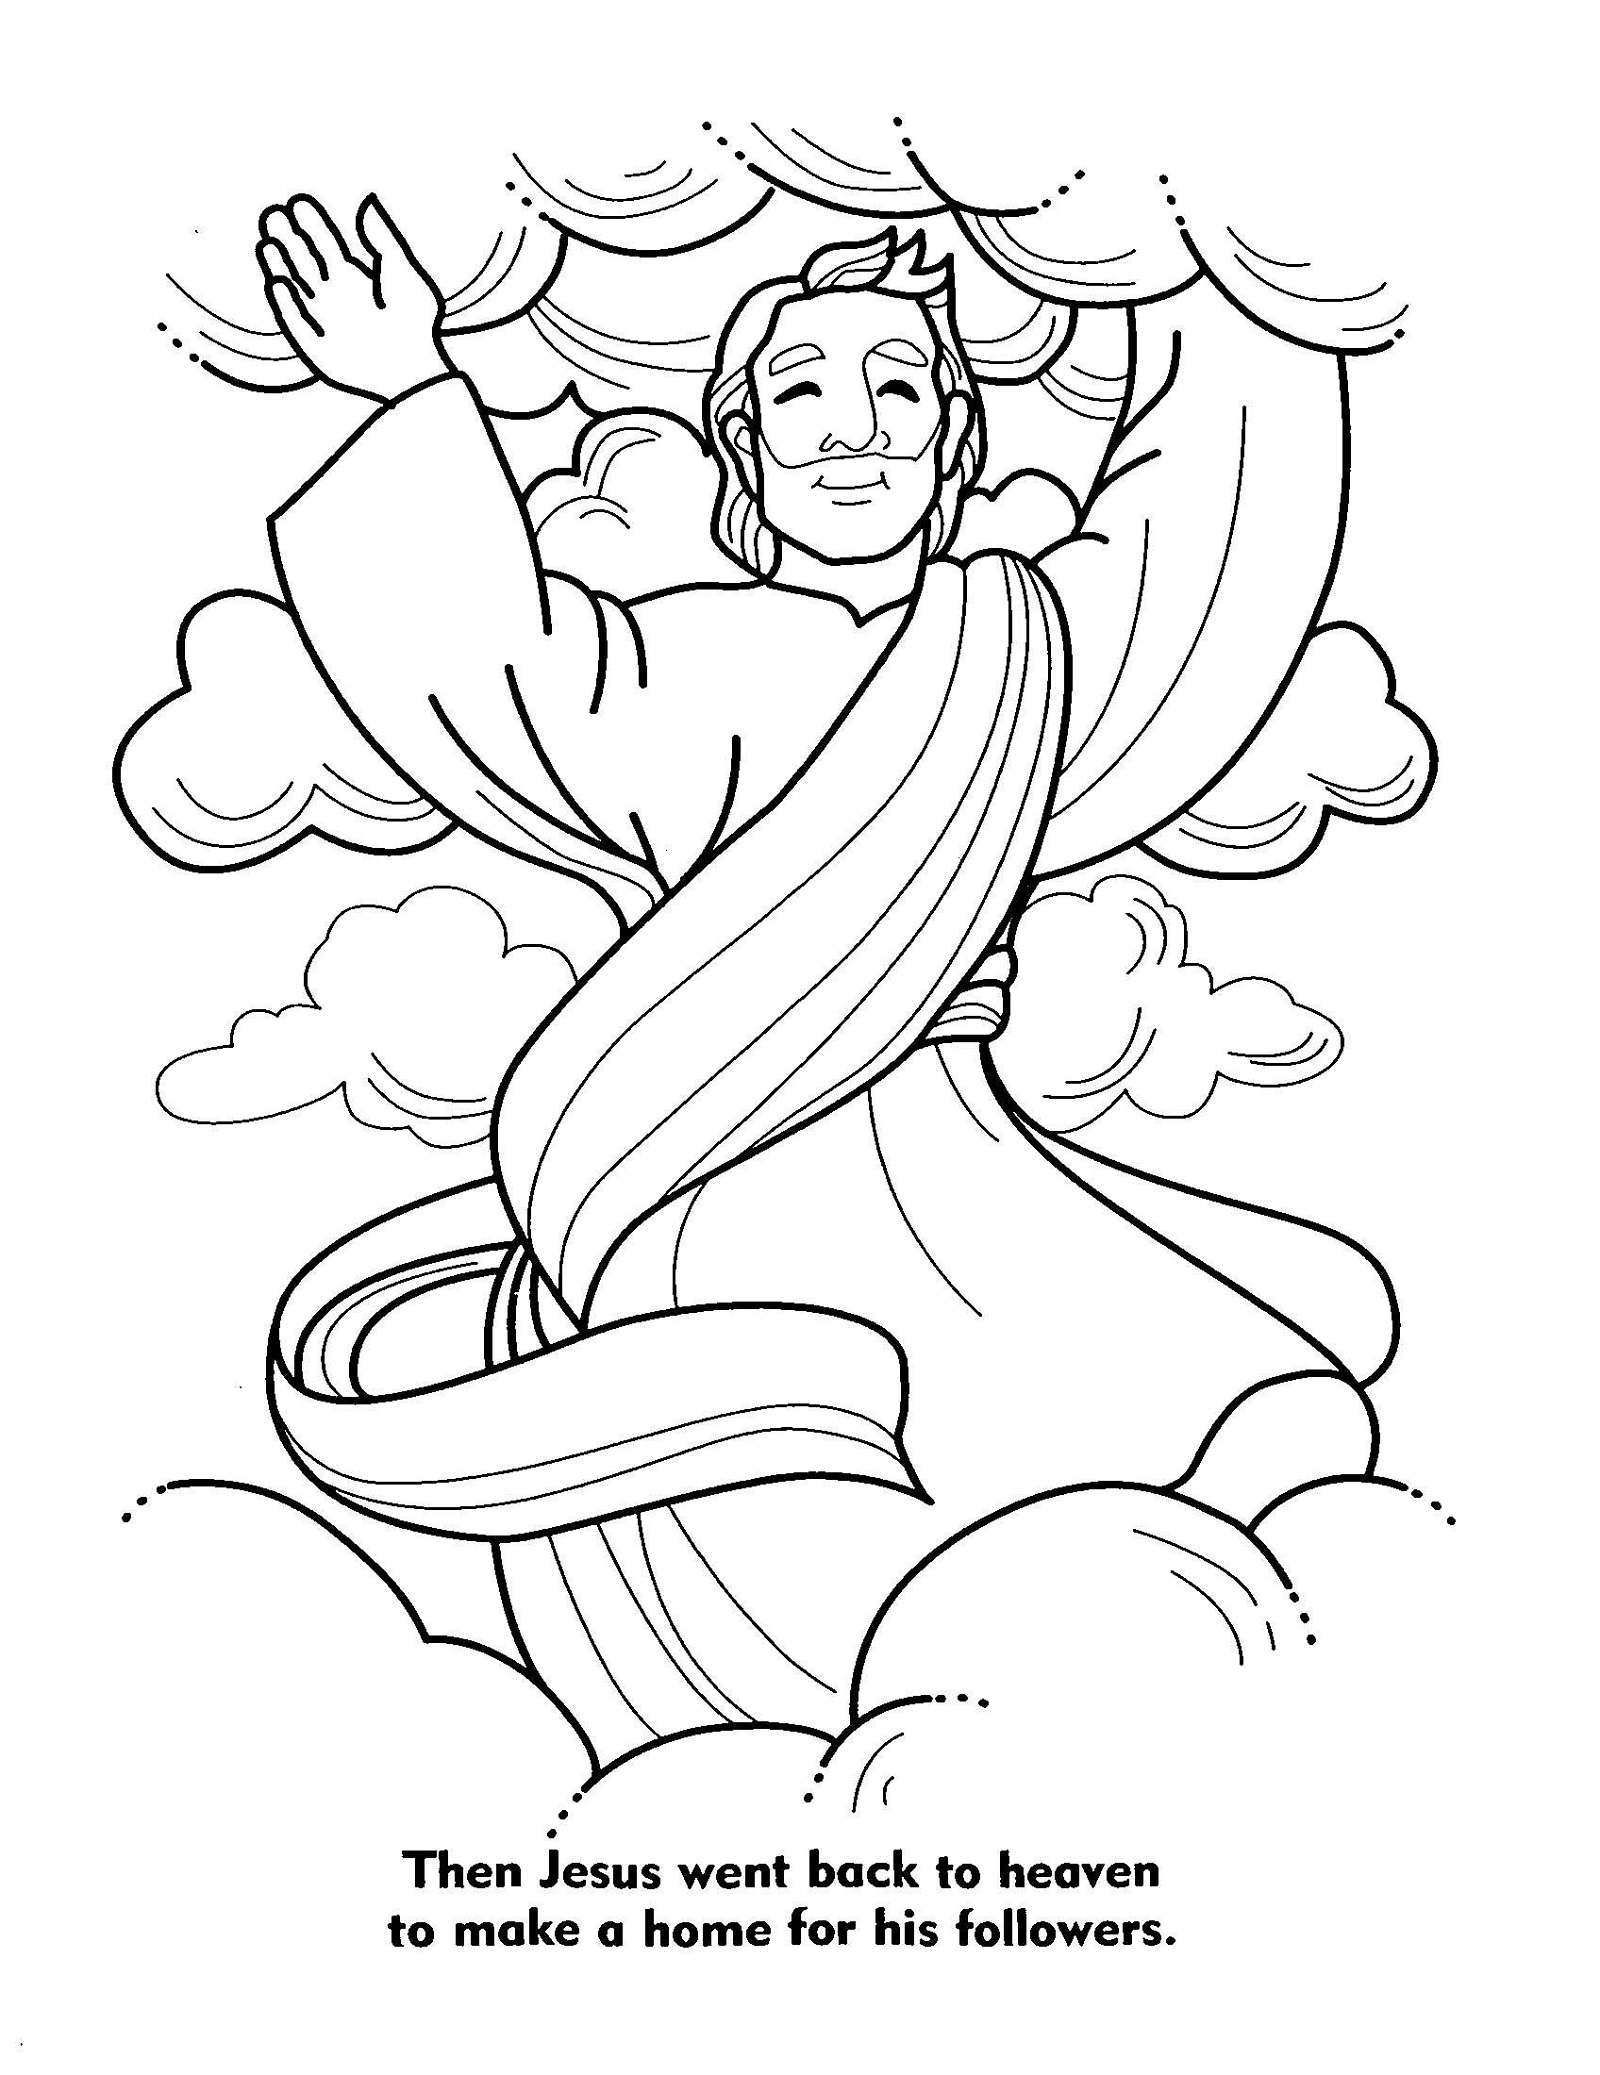 Queen Esther The Bible Heroes Coloring Page - NetArt | Bible ... | 2075x1600